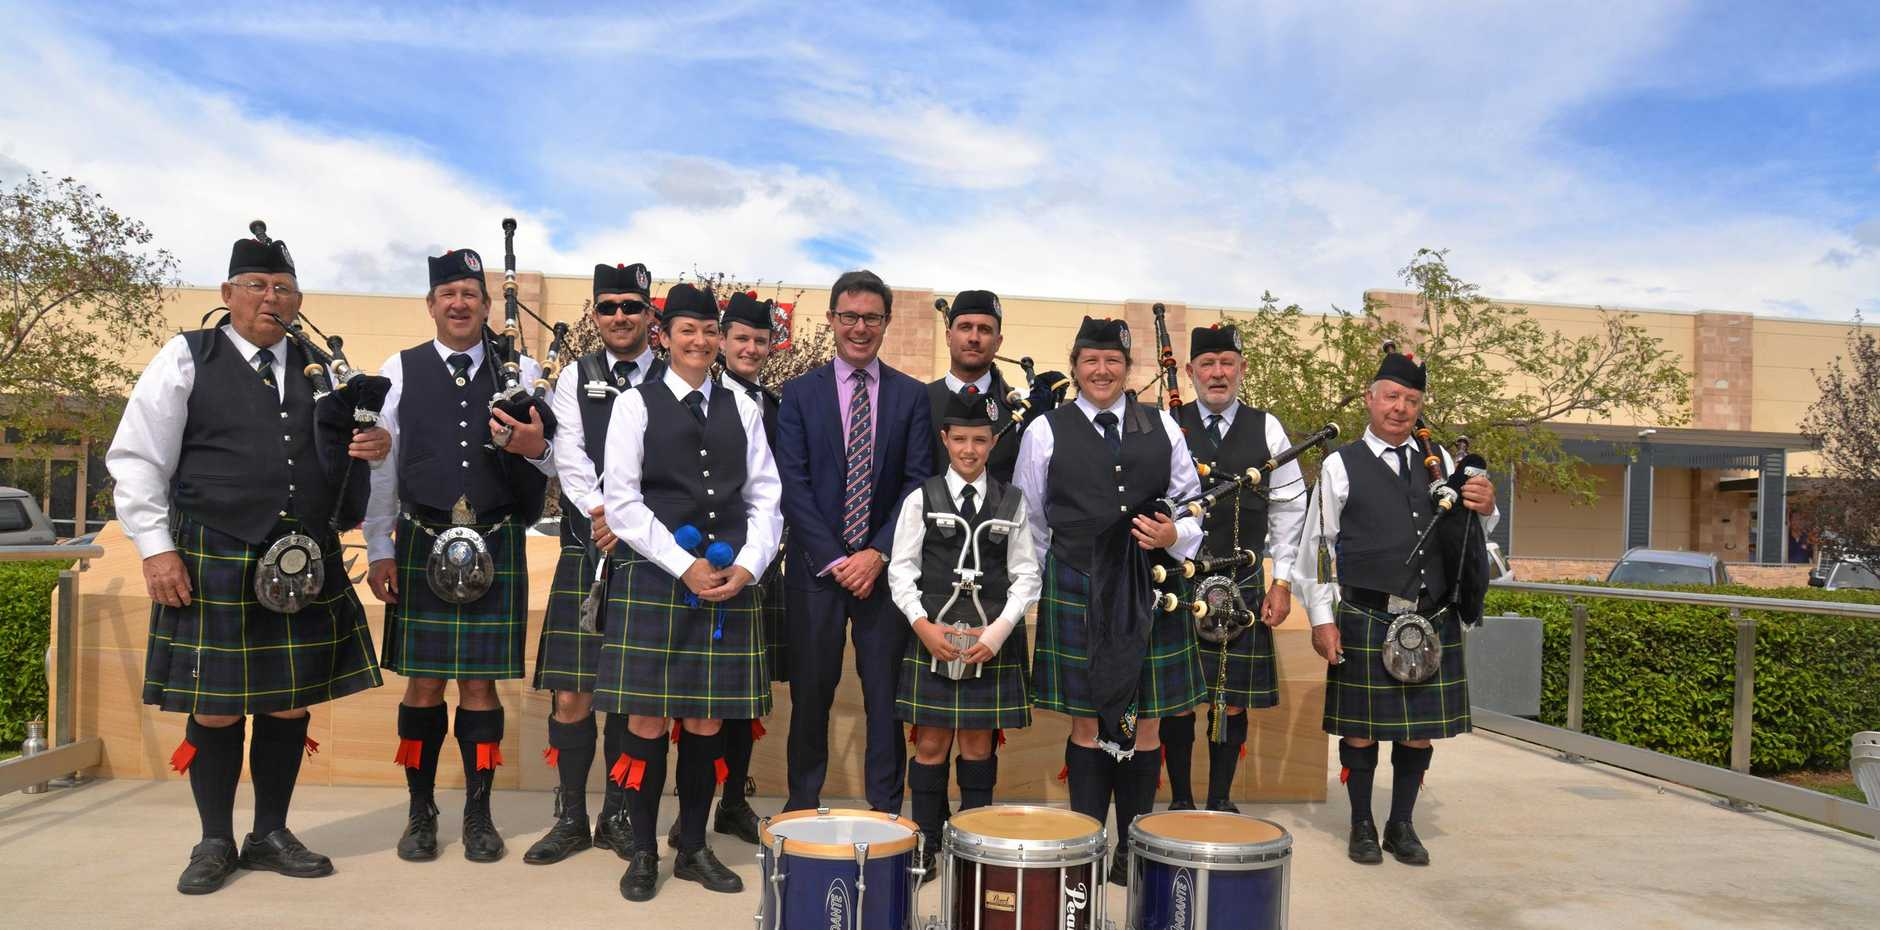 Members of the Warwick Thistle Pipe Band with Member for Maranoa David Littleproud at the dedication of the memorial wall and dais in Leslie Park.